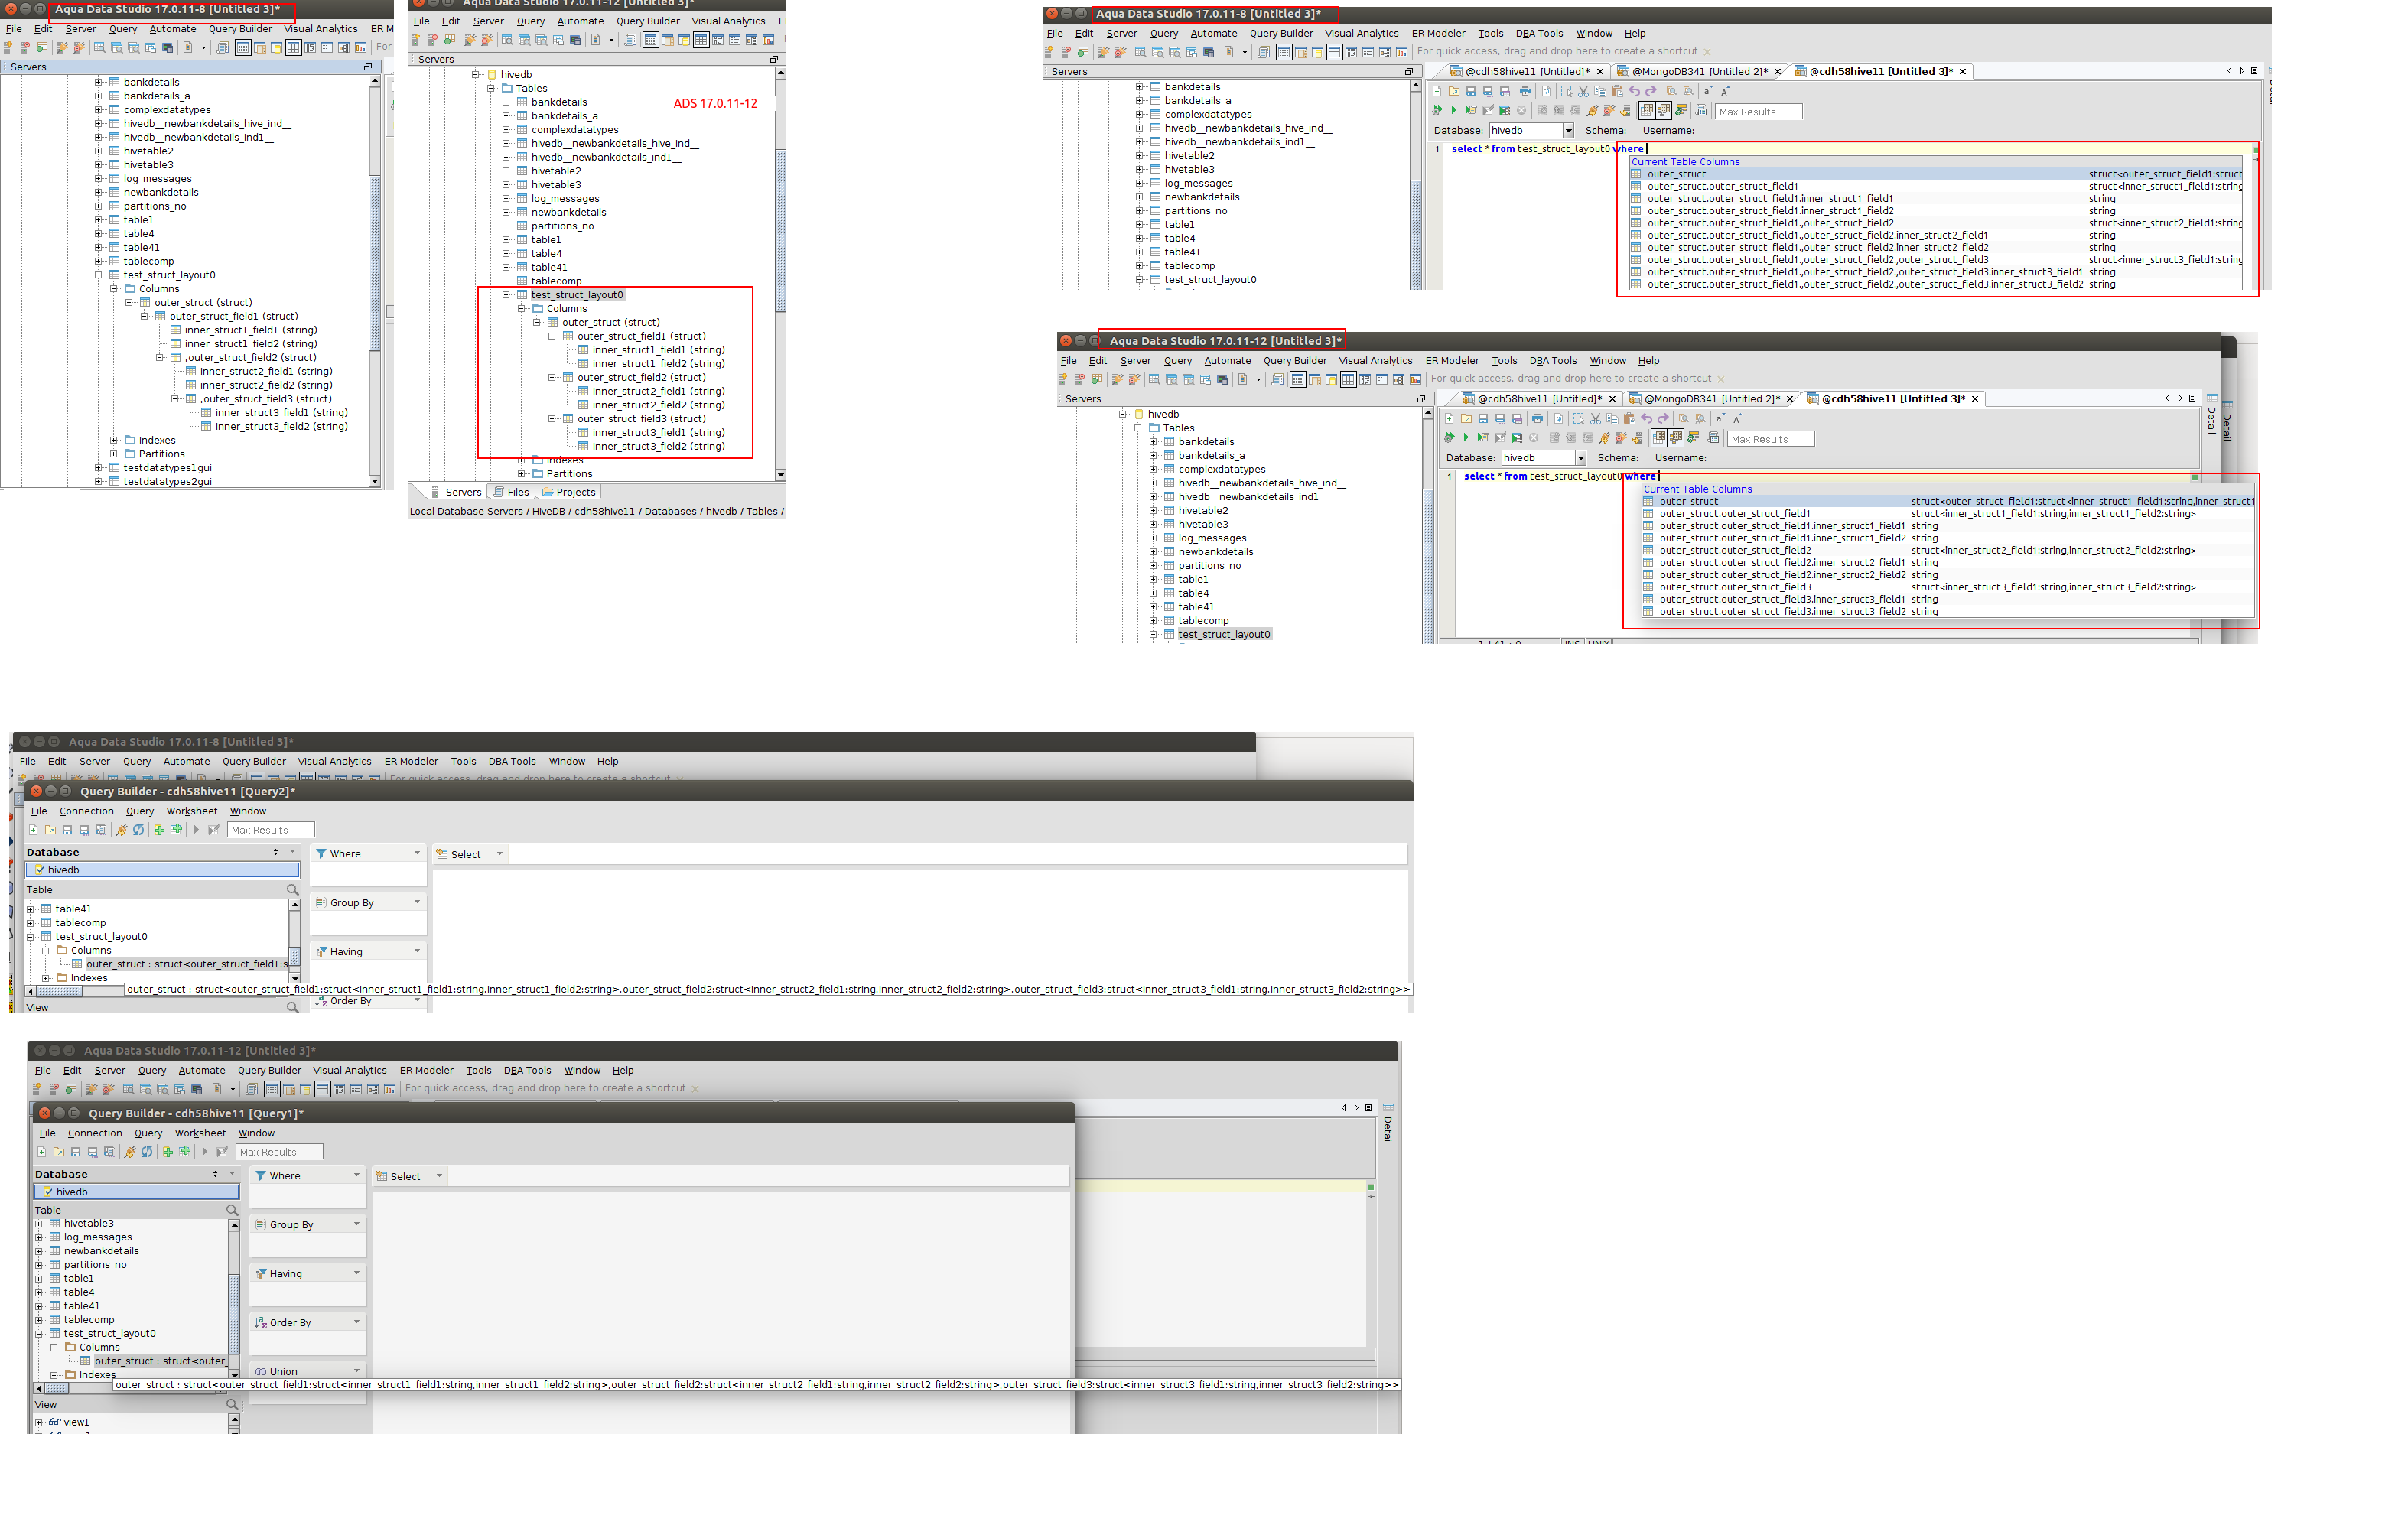 15025: Hive - Nested Struct's are not displaying correctly